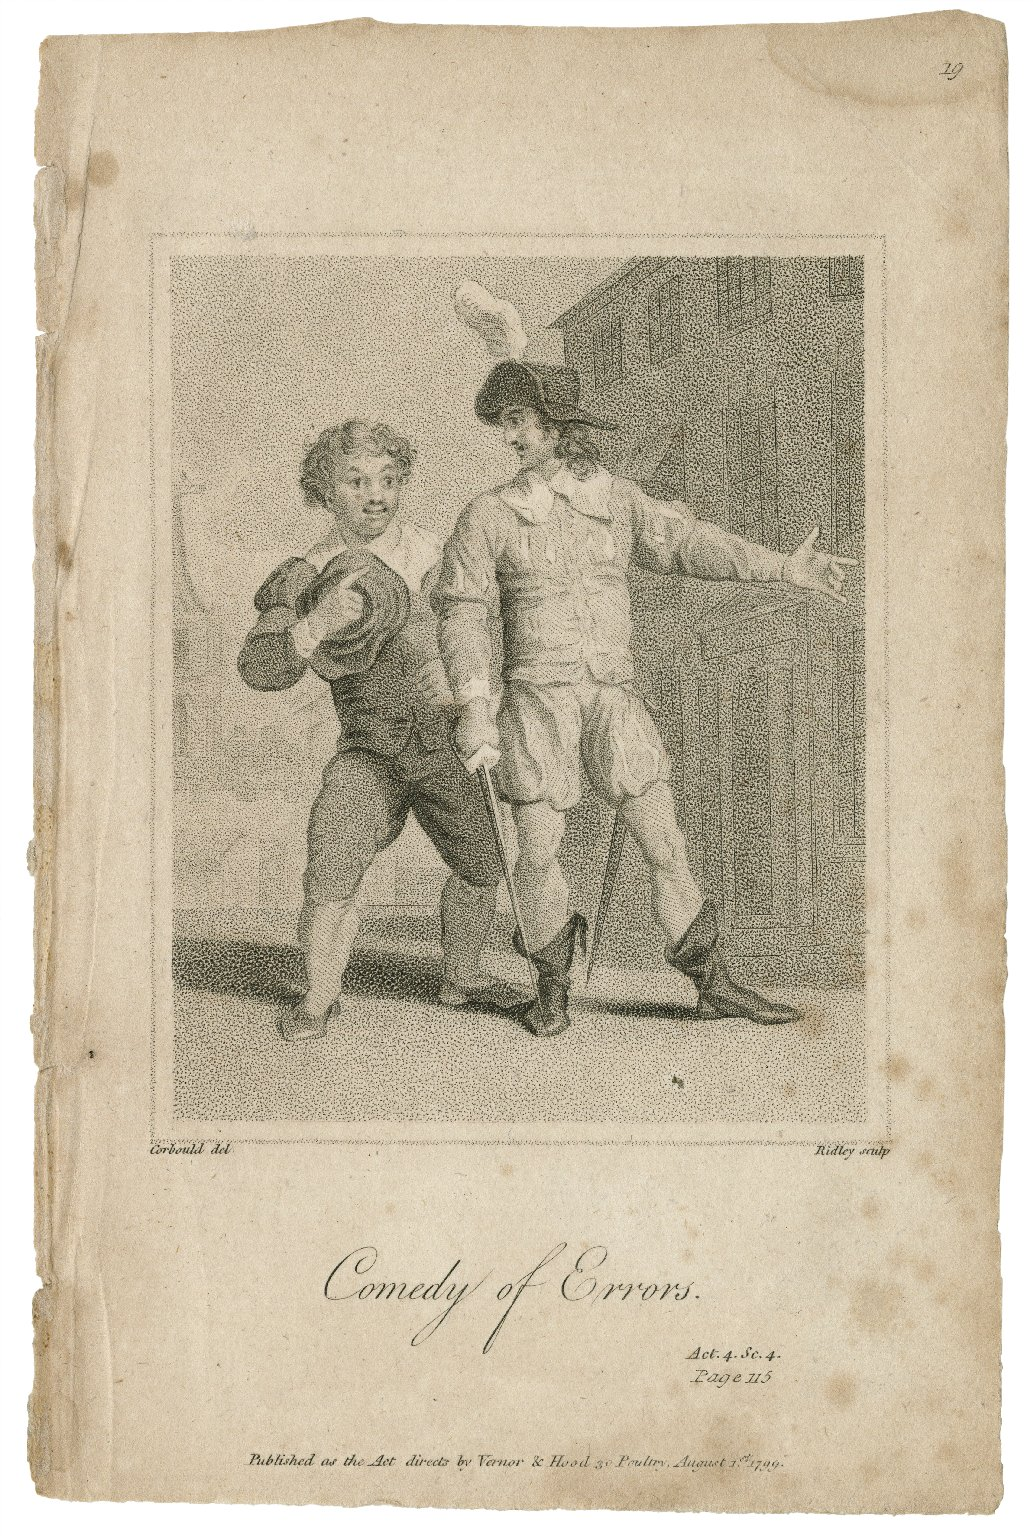 Comedy of errors, act 4, sc. 4 [graphic] / Corbould del. ; Ridley sculp.